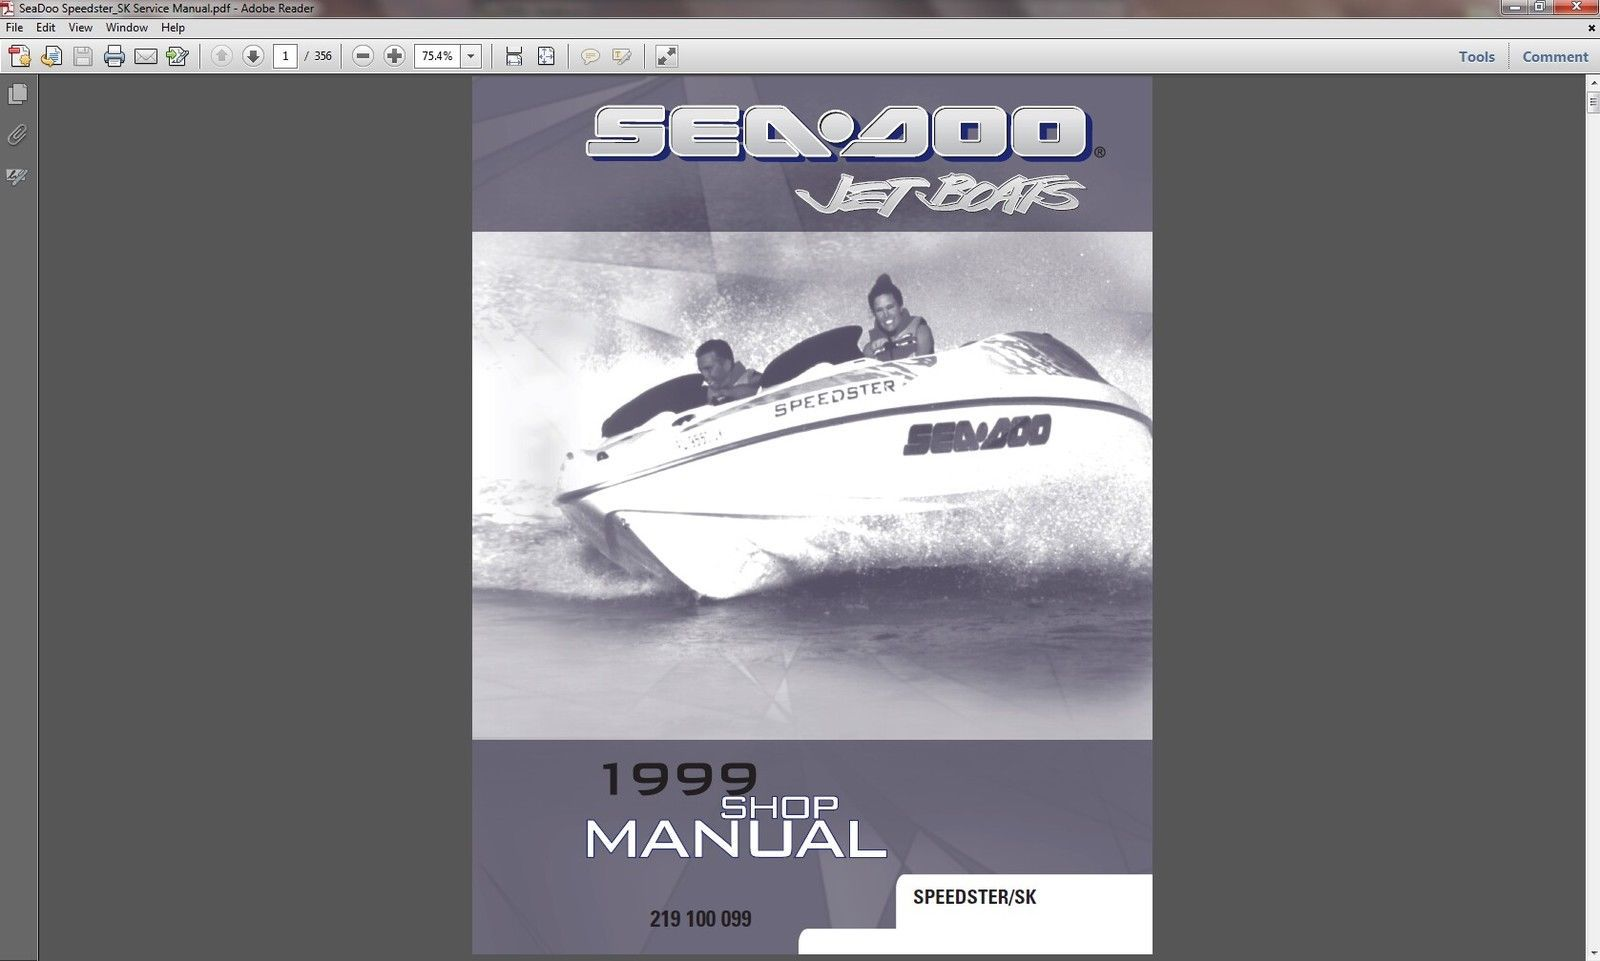 1999 sea doo speedster sk jet boats and 20 similar items rh bonanza com 1995 Seadoo Speedster Battery Conversion Fuse Diagram 1995 Seadoo Speedster